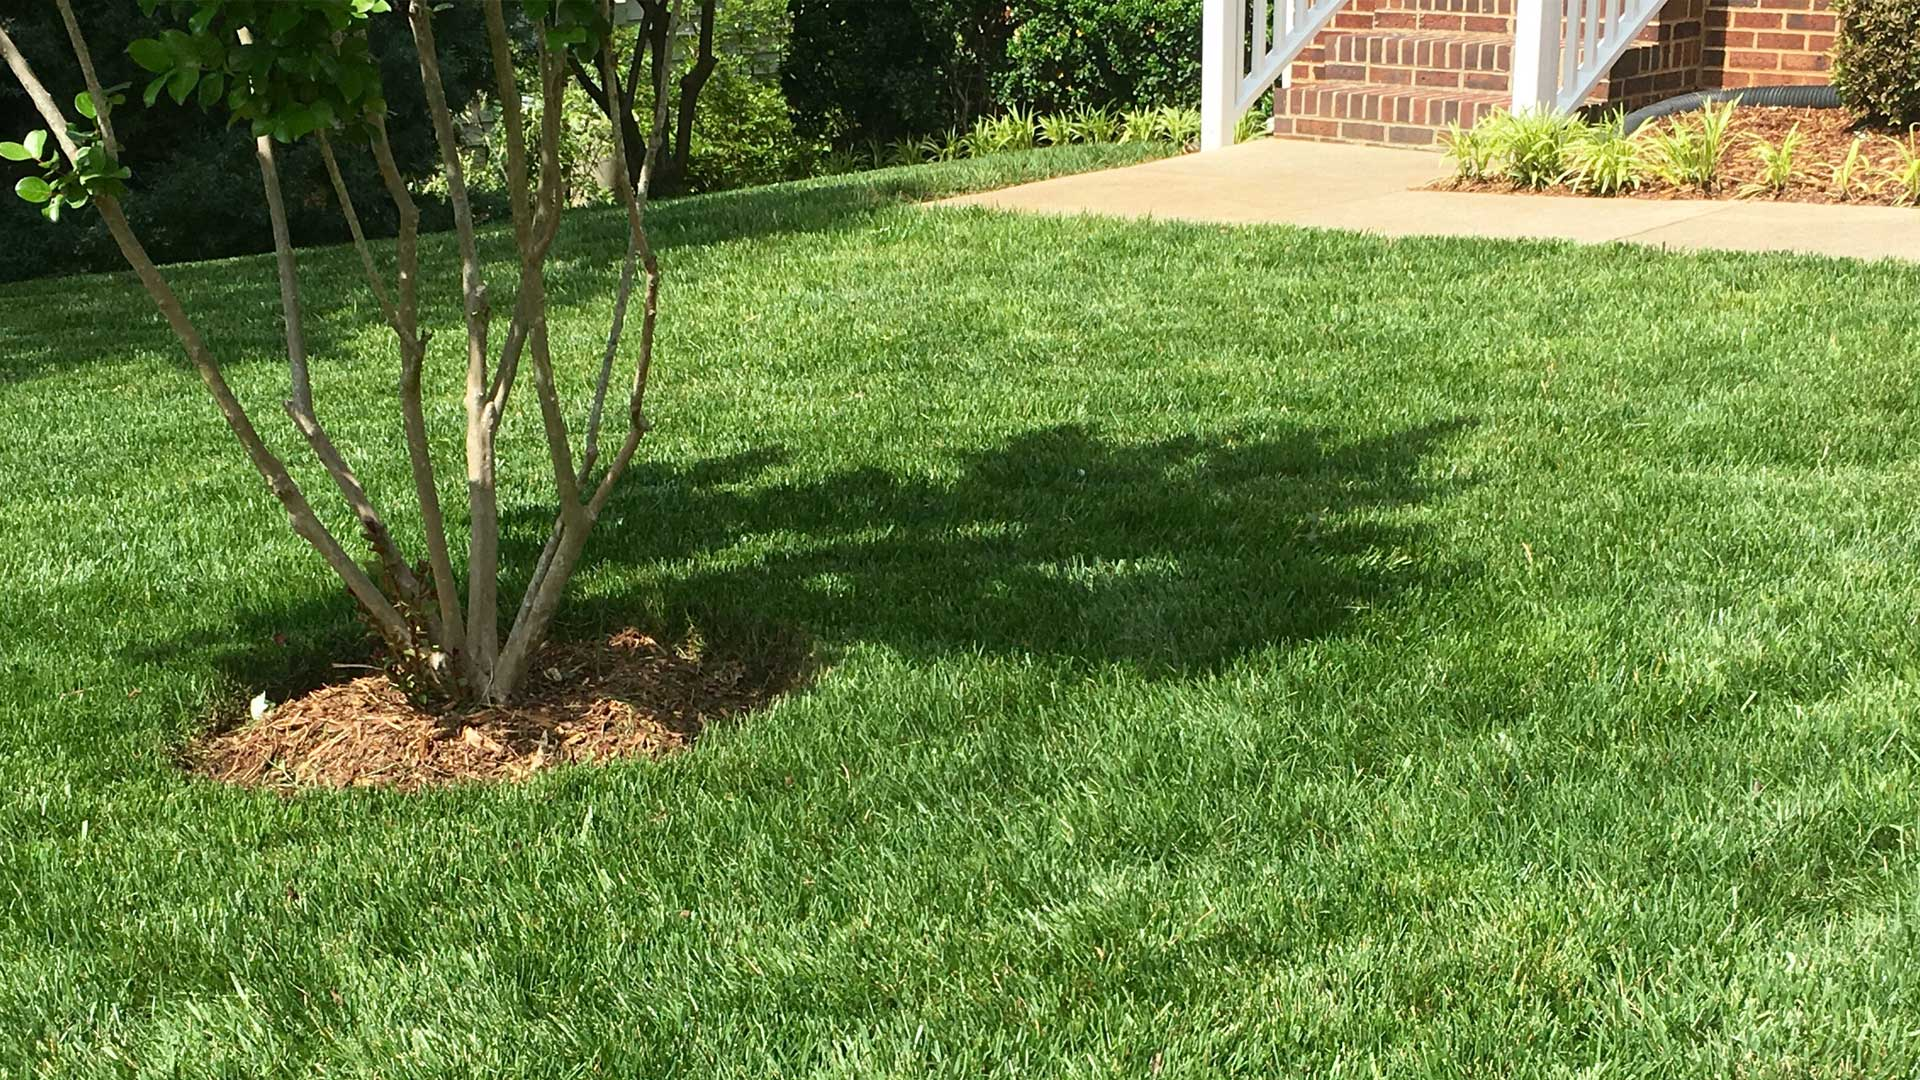 Residential yard in Apex, NC after lawn cleanup services